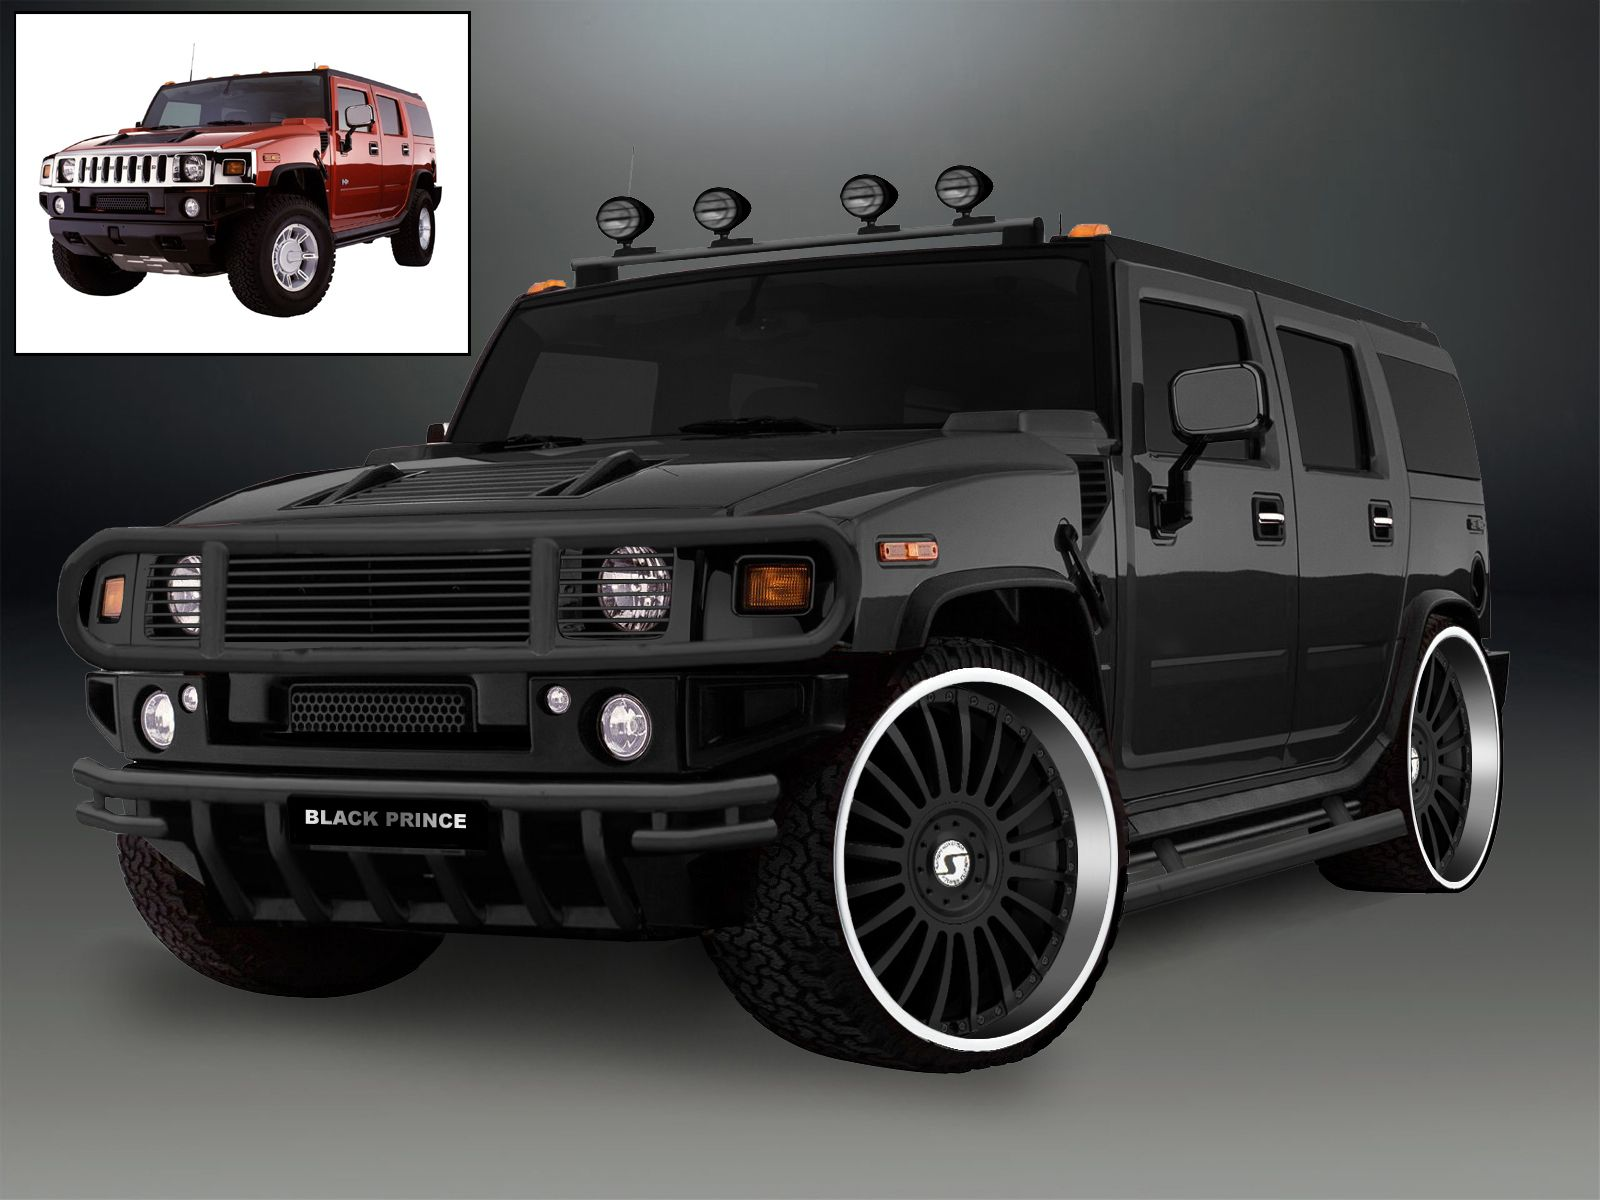 hummer h2 hd wallpaper hummer pinterest hummer. Black Bedroom Furniture Sets. Home Design Ideas